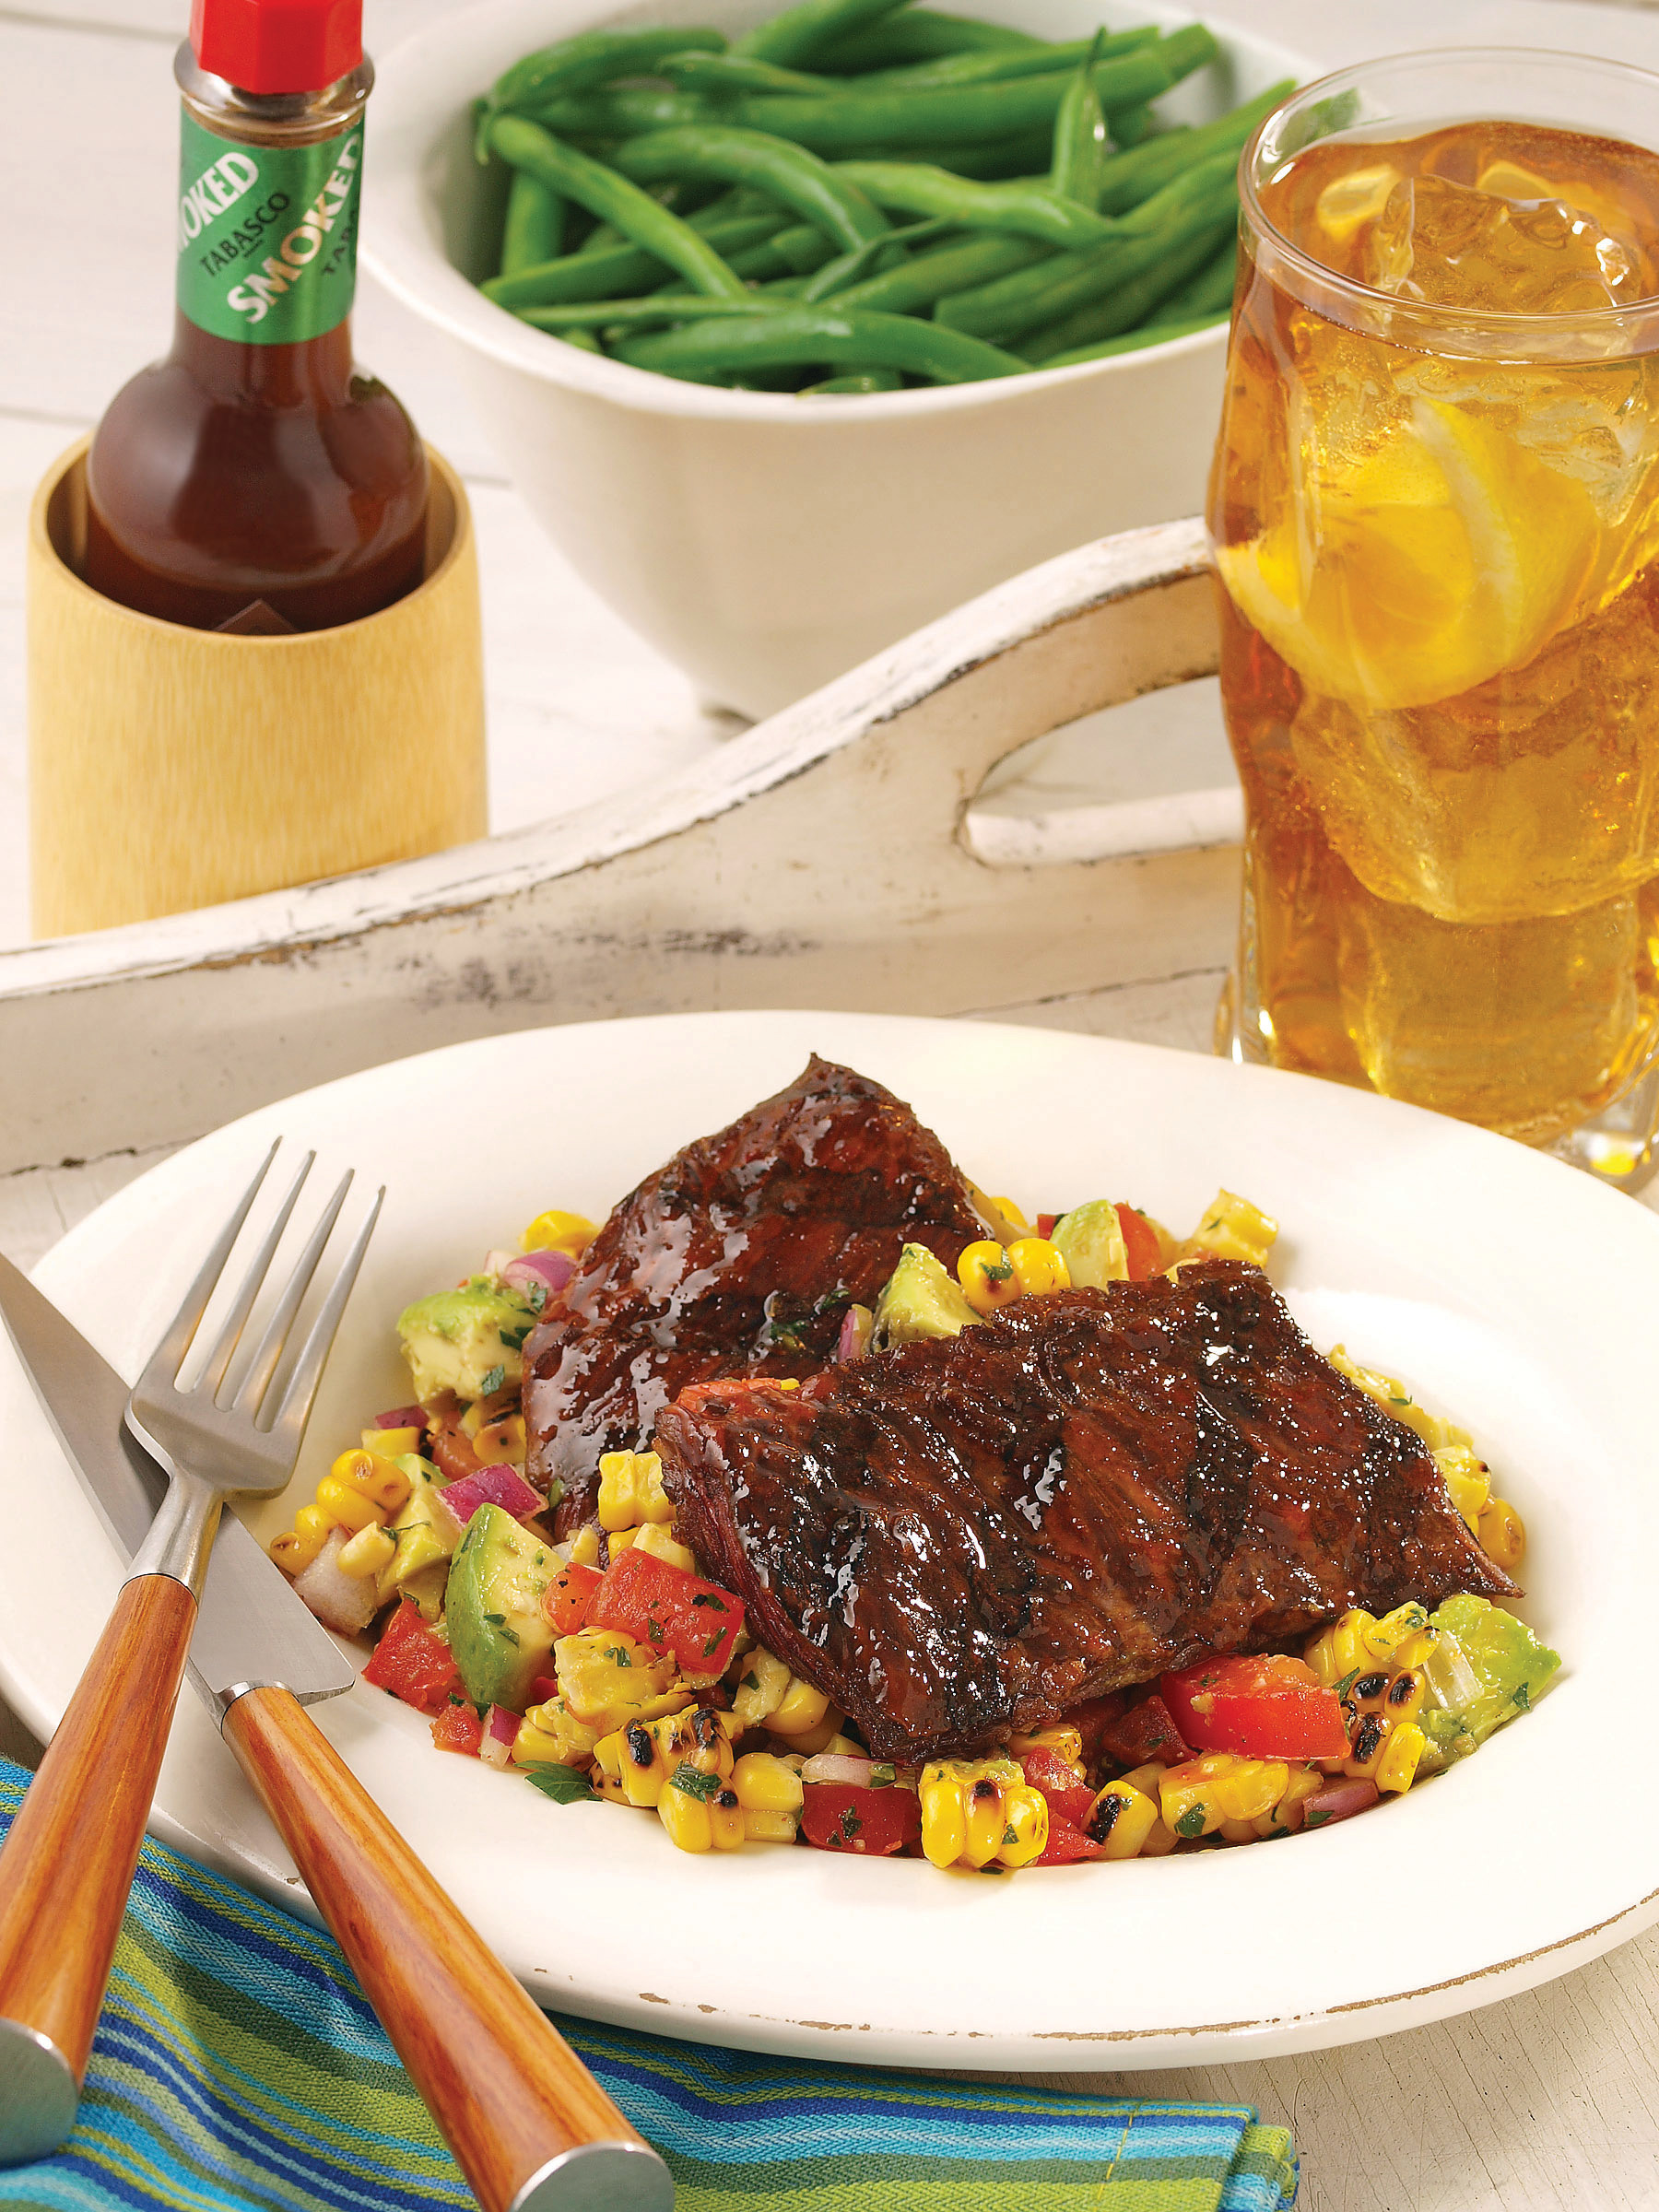 A quick and easy chipotle marinated grilled skirt steak will spice up any gathering. Pair it with a roasted corn salad that embodies the fresh flavors of the season — a mixture of corn, tomato, red onion, basil, and avocado.